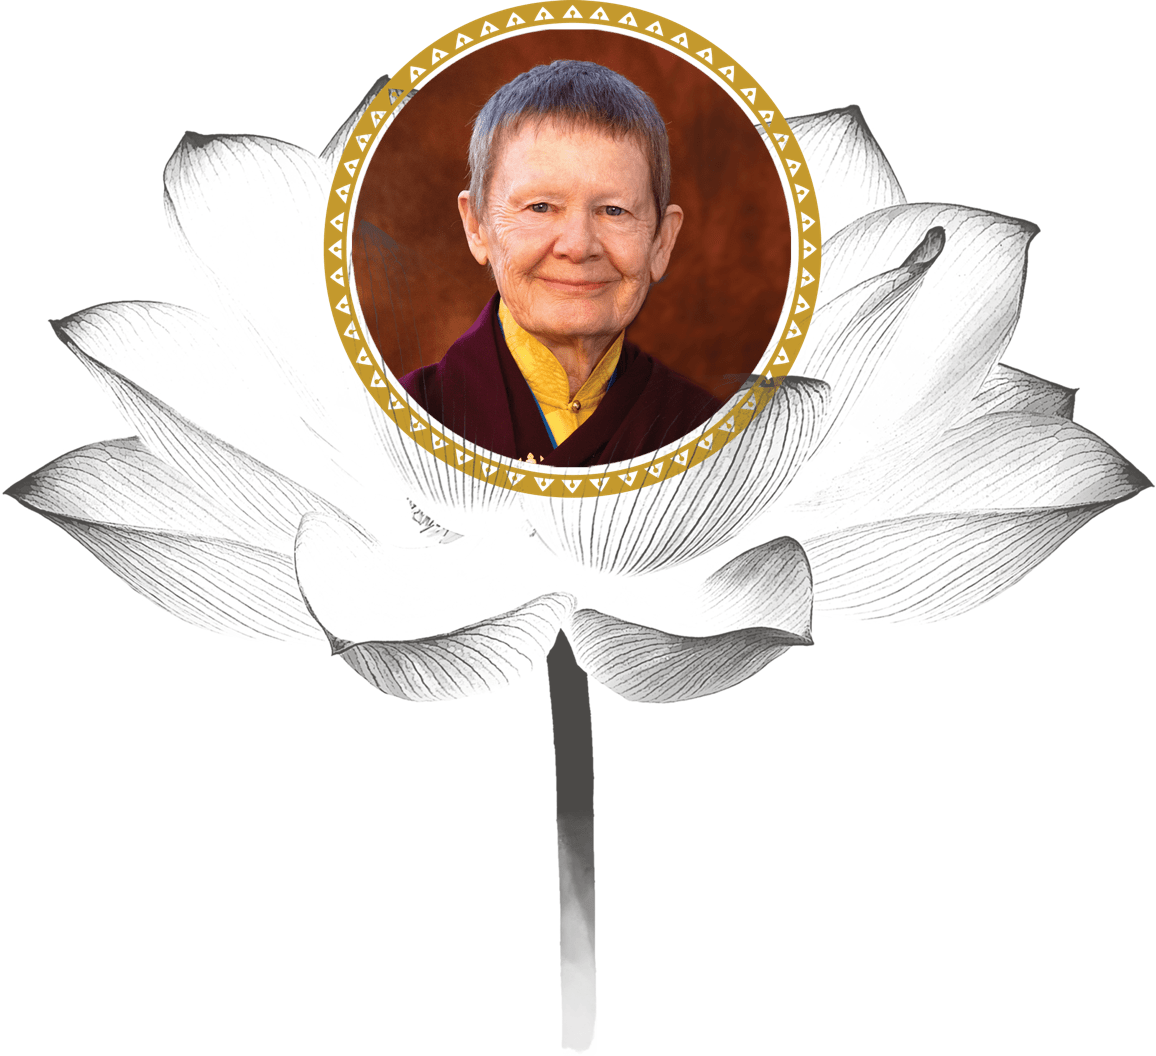 A smiling headshot of Pema Chödrön, placed inside of a decorative circular border with a black-and-white lotus flower in the background.